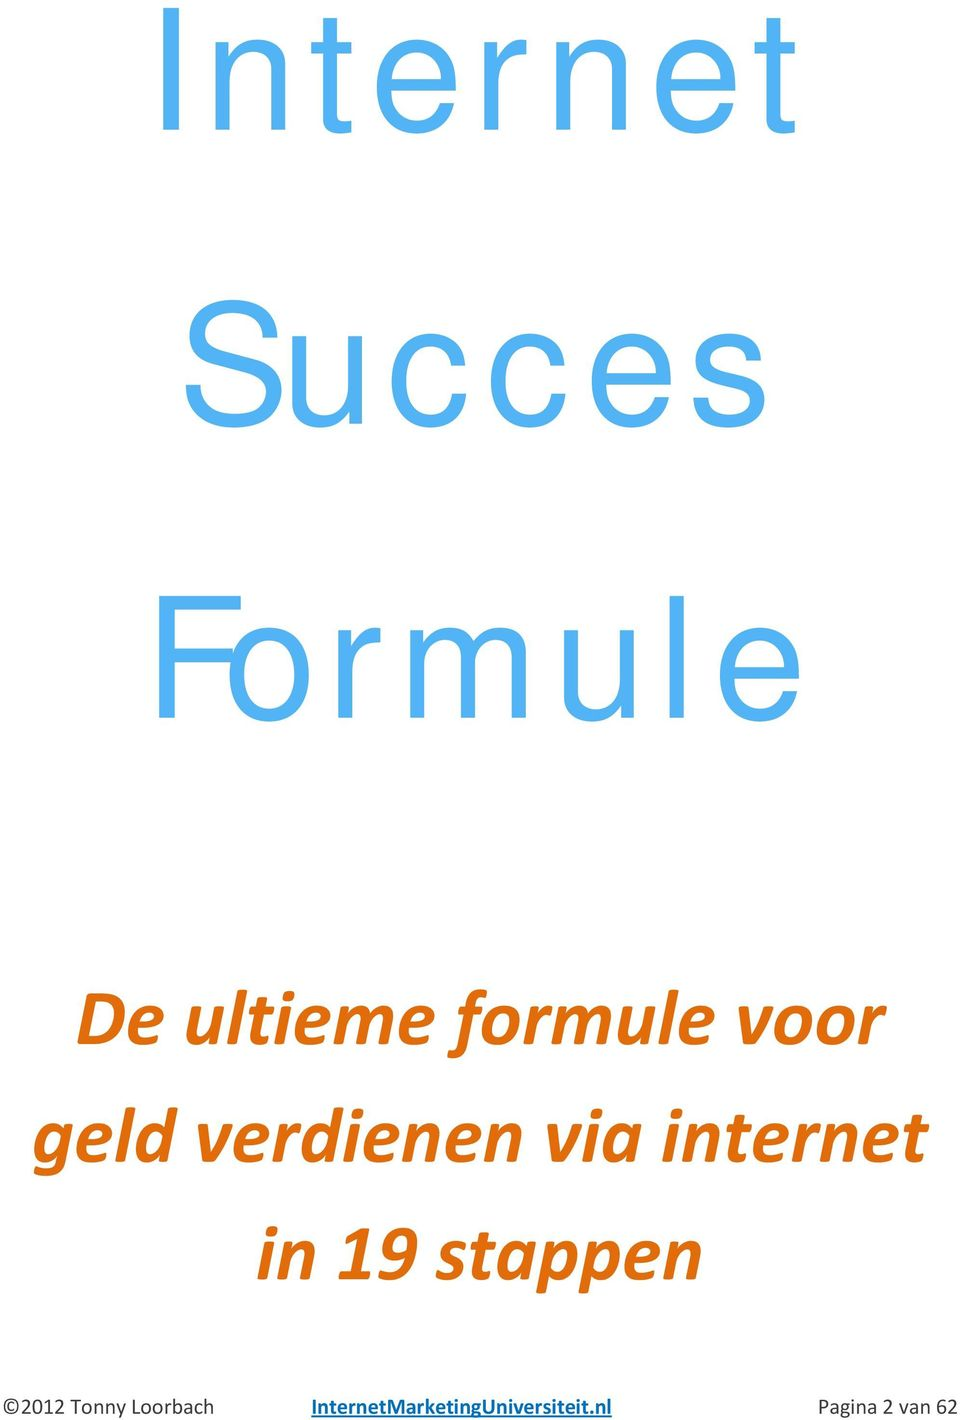 internet in 19 stappen 2012 Tonny